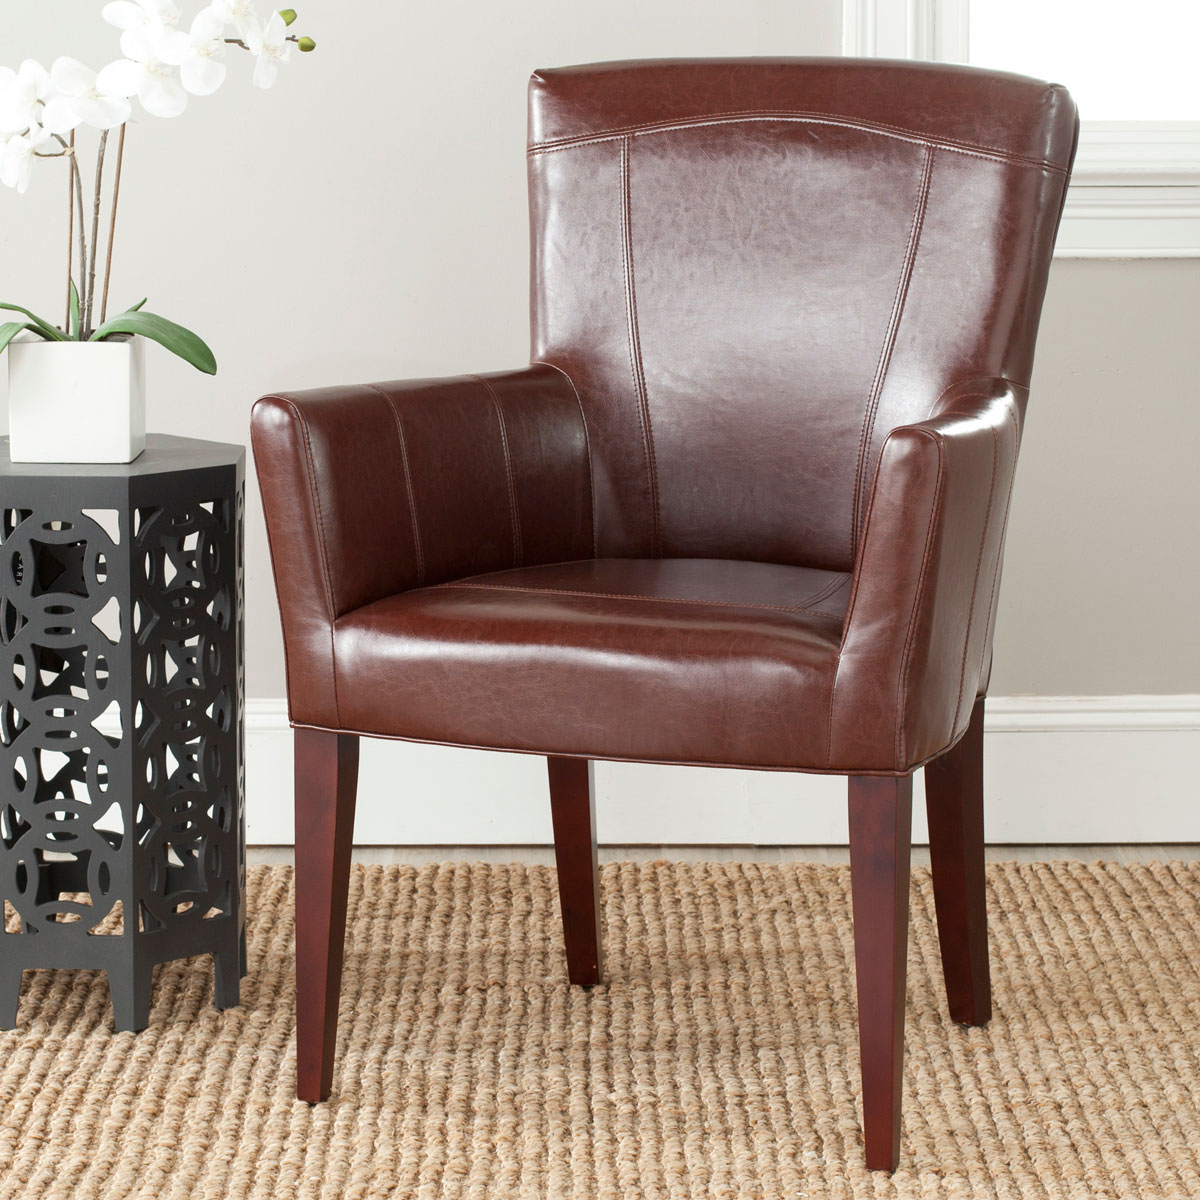 DALE ARM CHAIR MCR4710A ACCENT CHAIRS. Color: Brown Leather